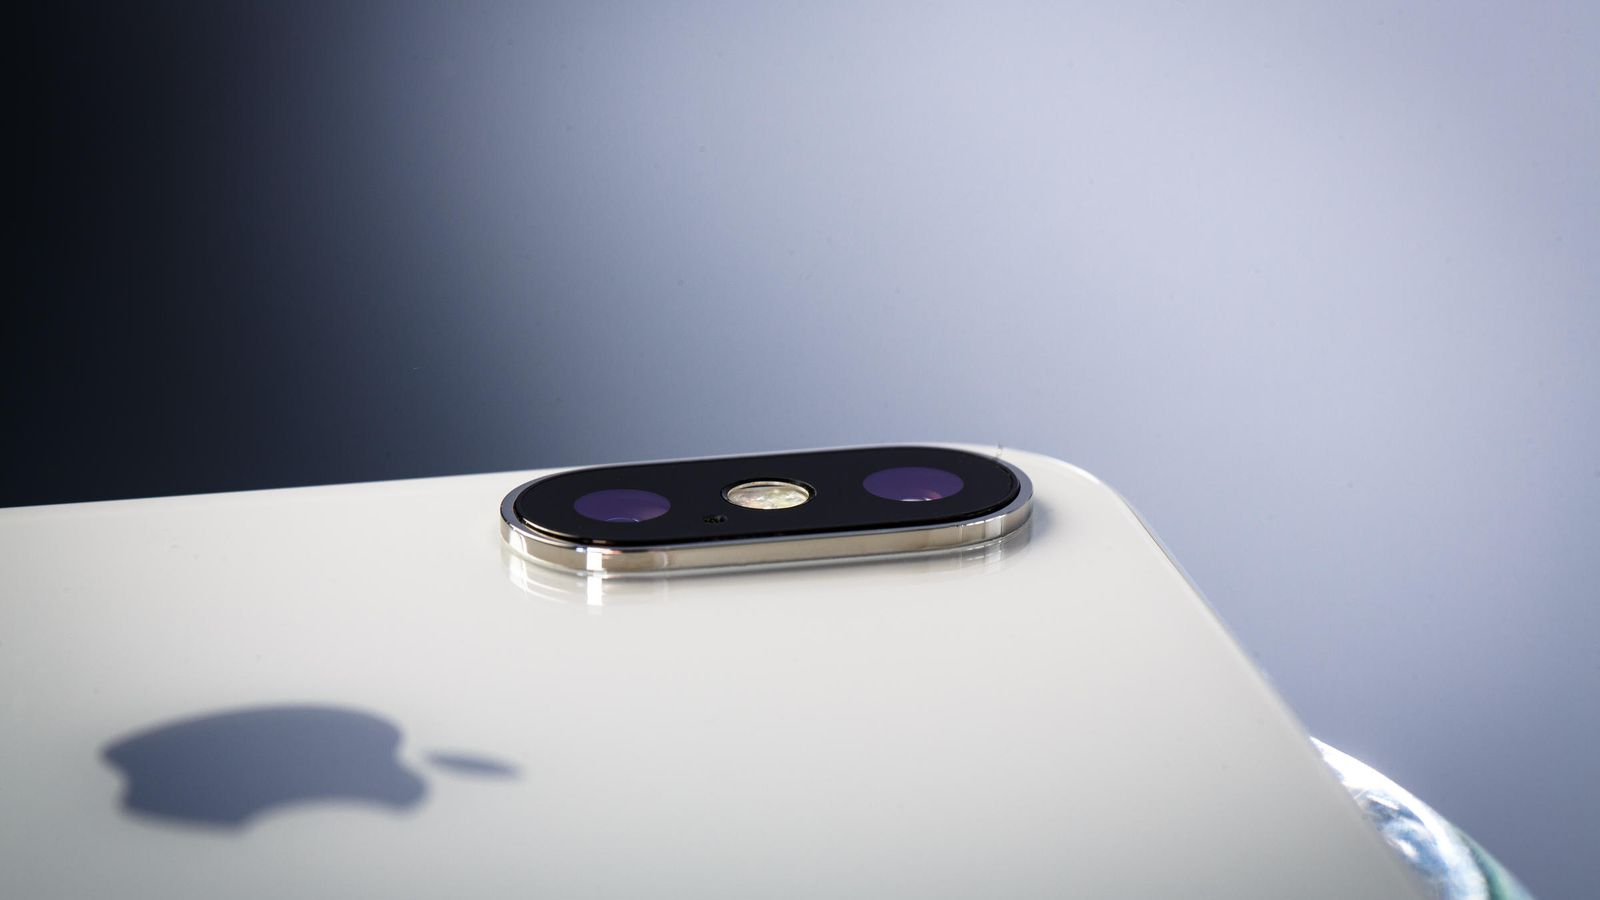 Apple could equip the next iPhone with a triple camera media